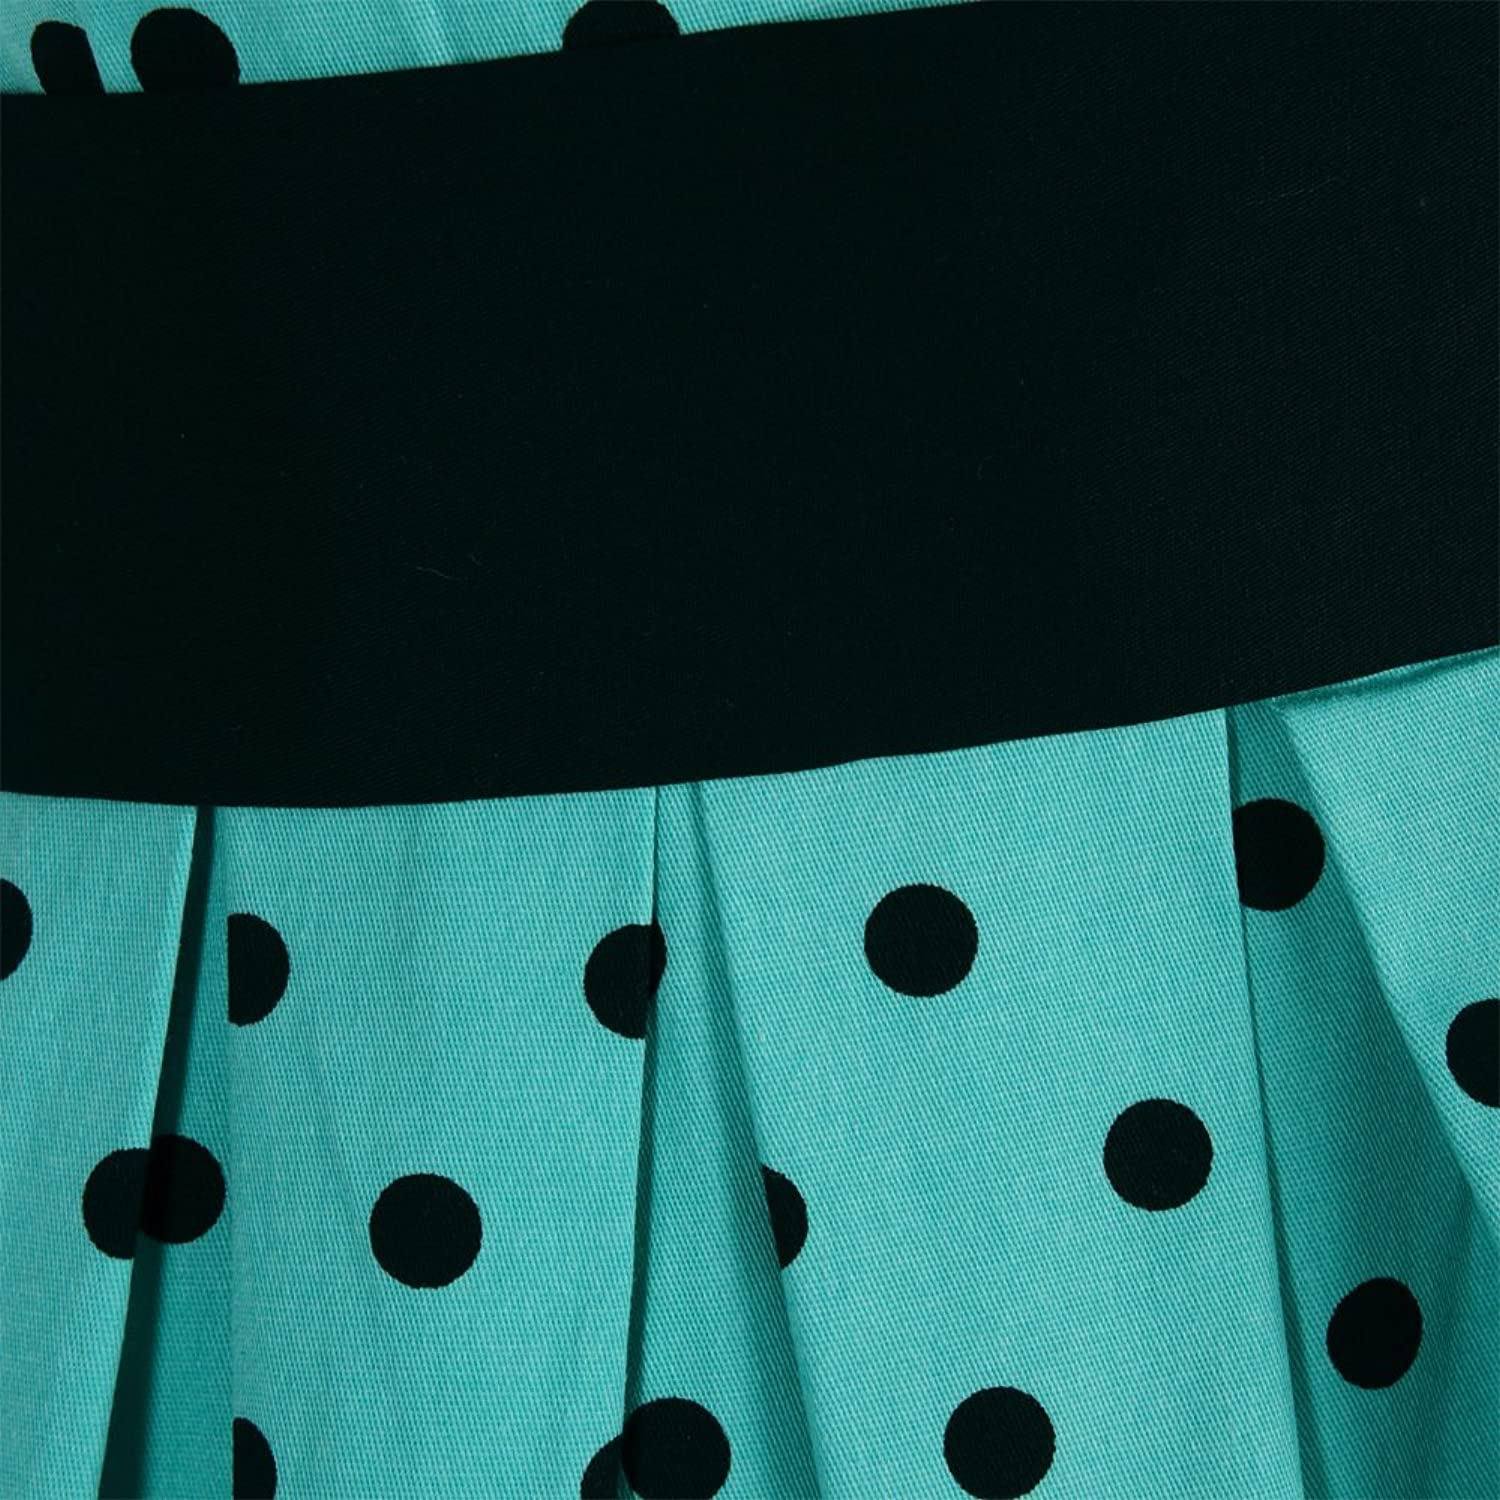 Lindy Bop 'Lana' Turquoise Black Polka Party Dress